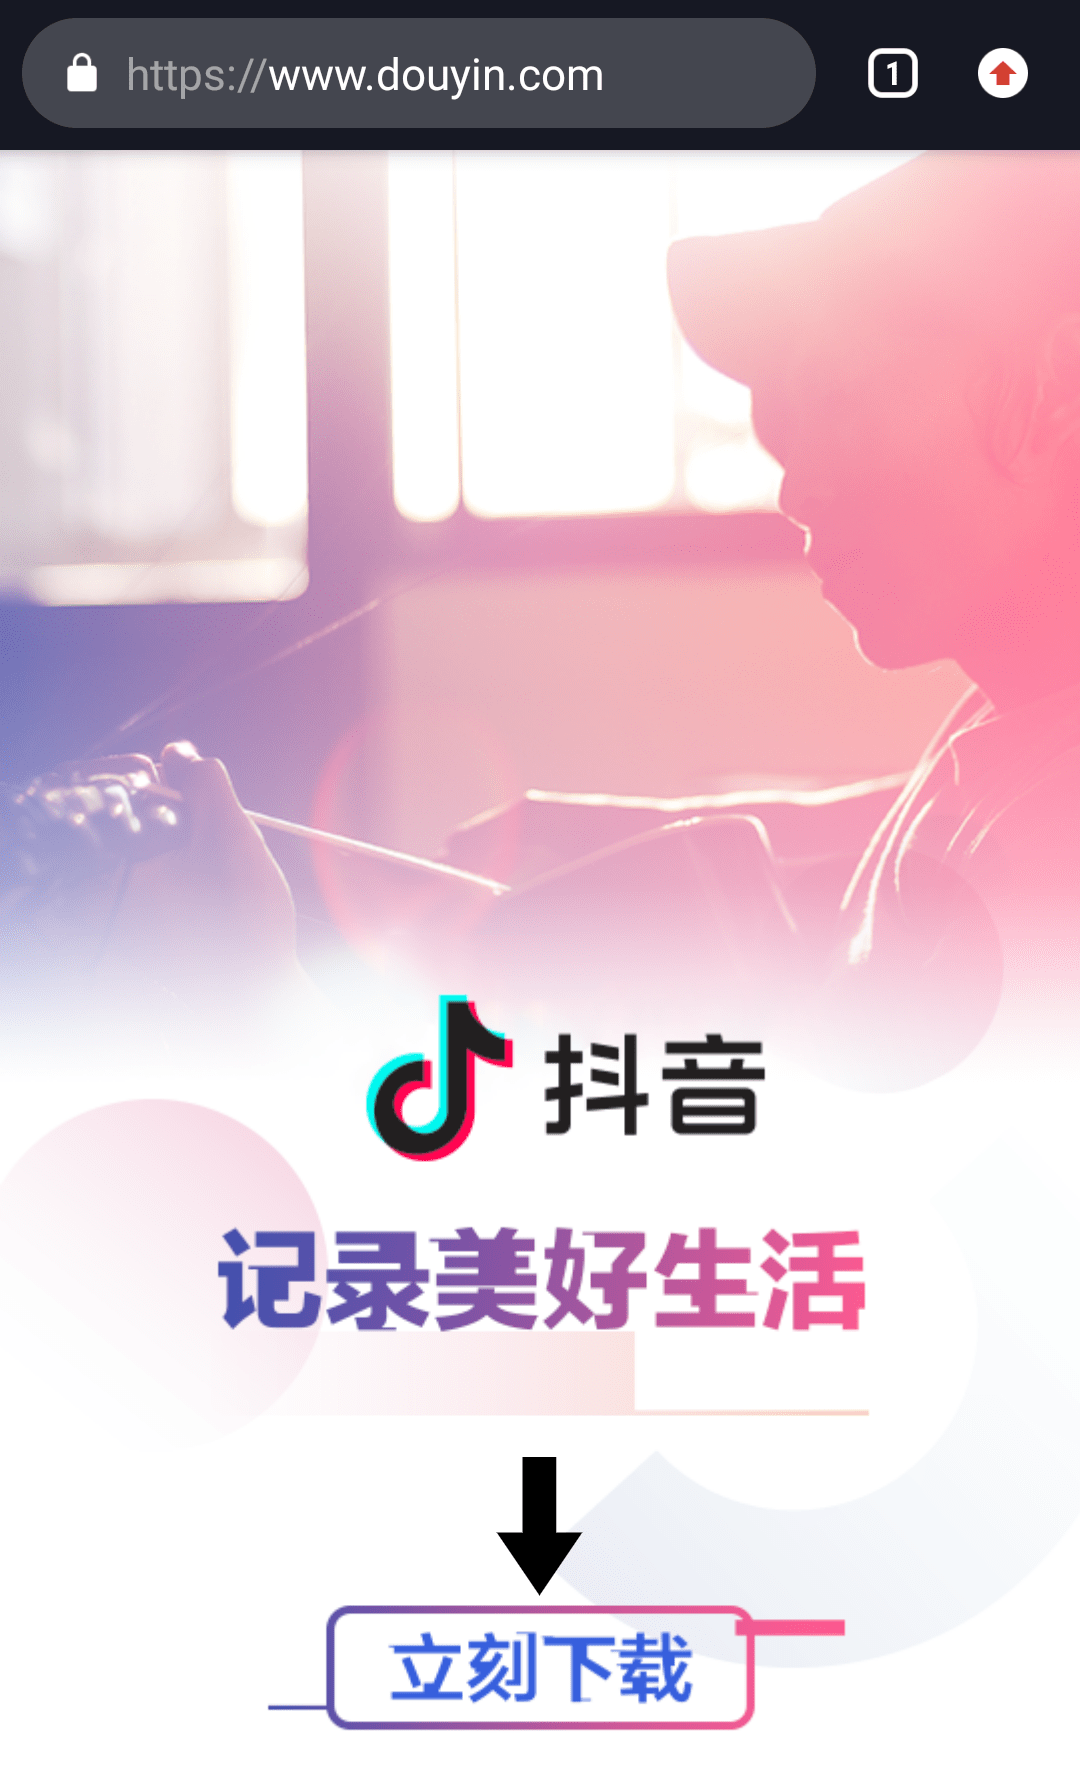 how to download douyin android